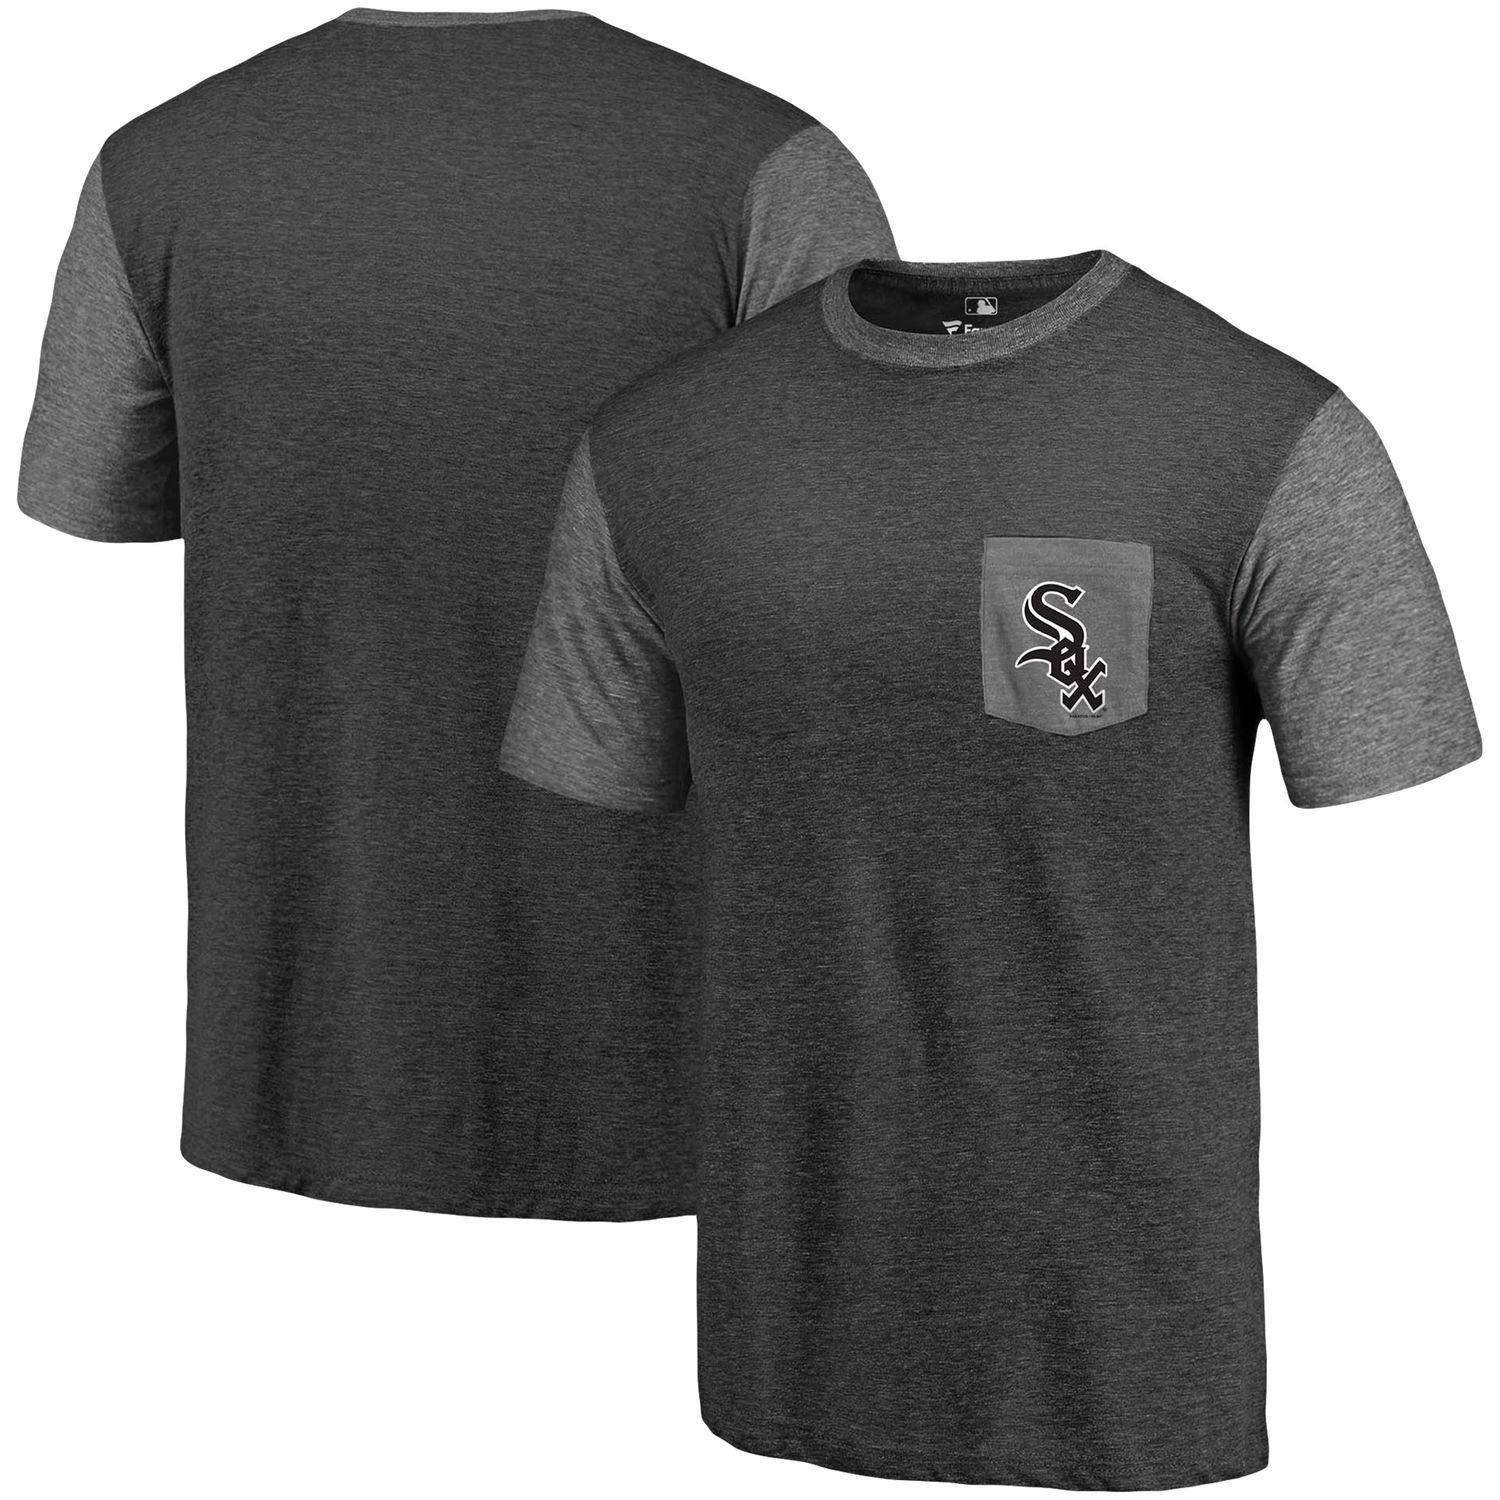 Men's Chicago White Sox Fanatics Branded Black-Heather Gray Refresh Pocket T-Shirt